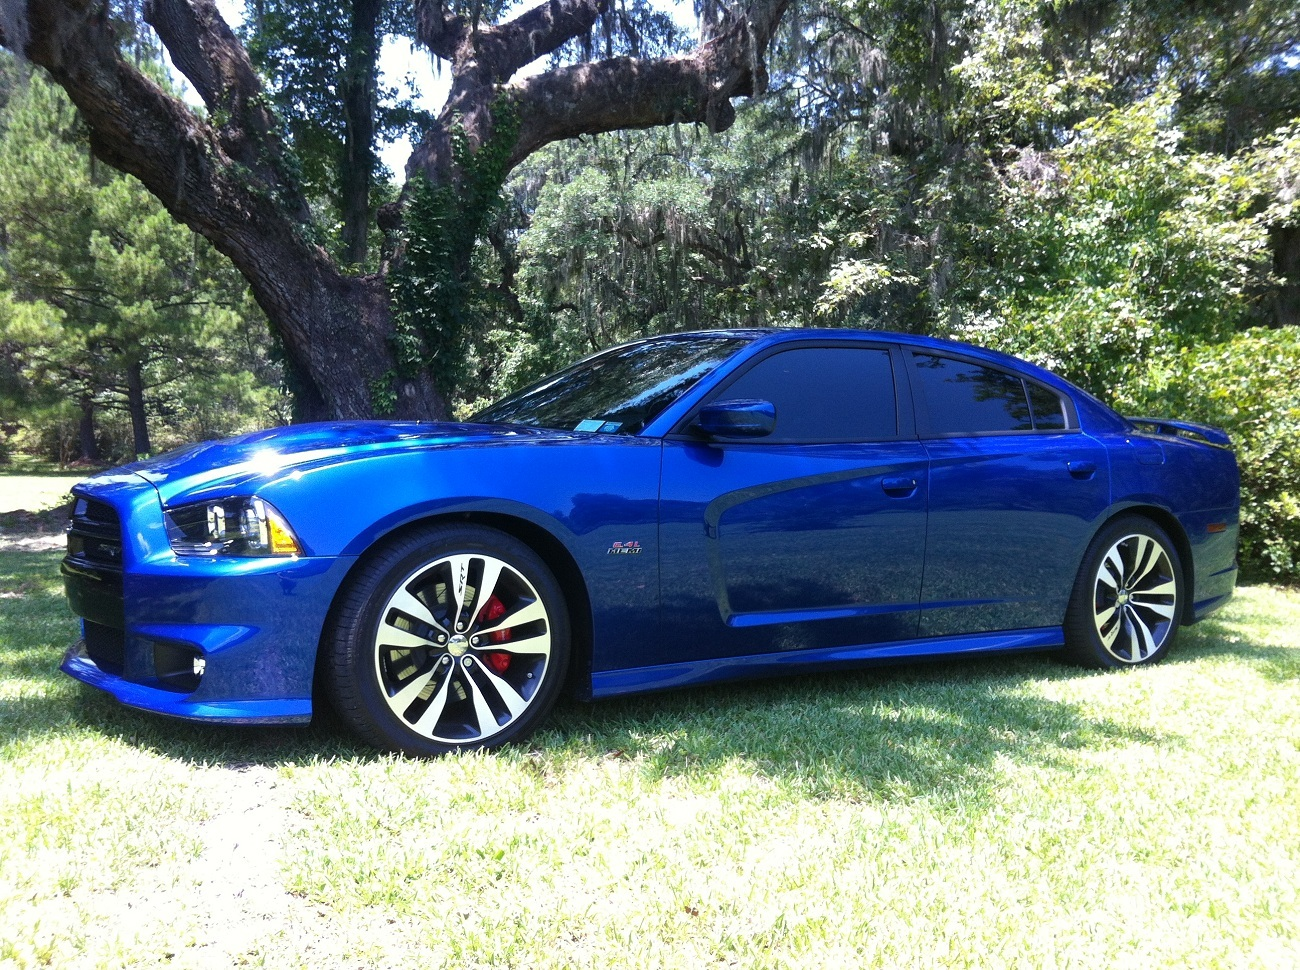 2012 blue streak pearl dodge charger srt8 pictures mods upgrades wallpaper. Black Bedroom Furniture Sets. Home Design Ideas